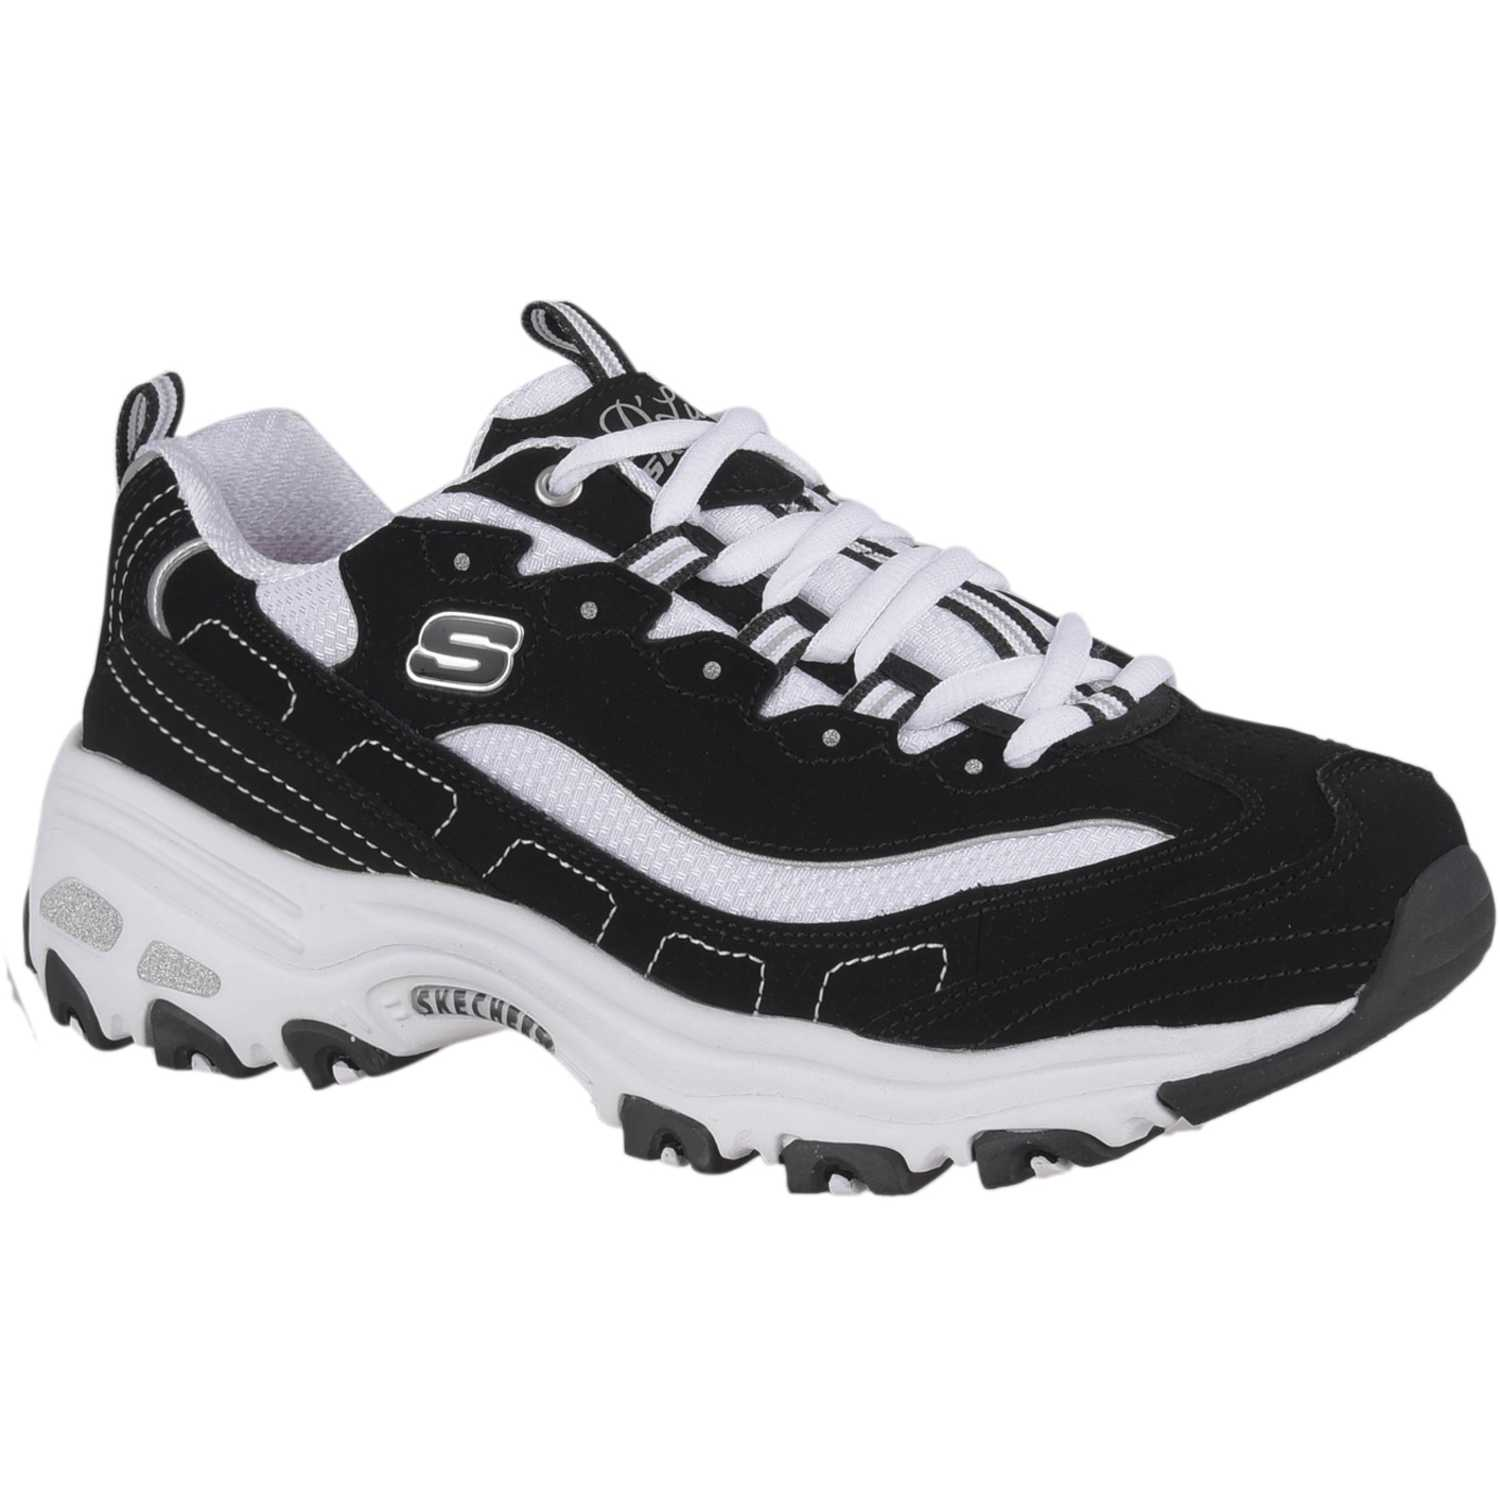 Skechers d'lites Negro / blanco Walking